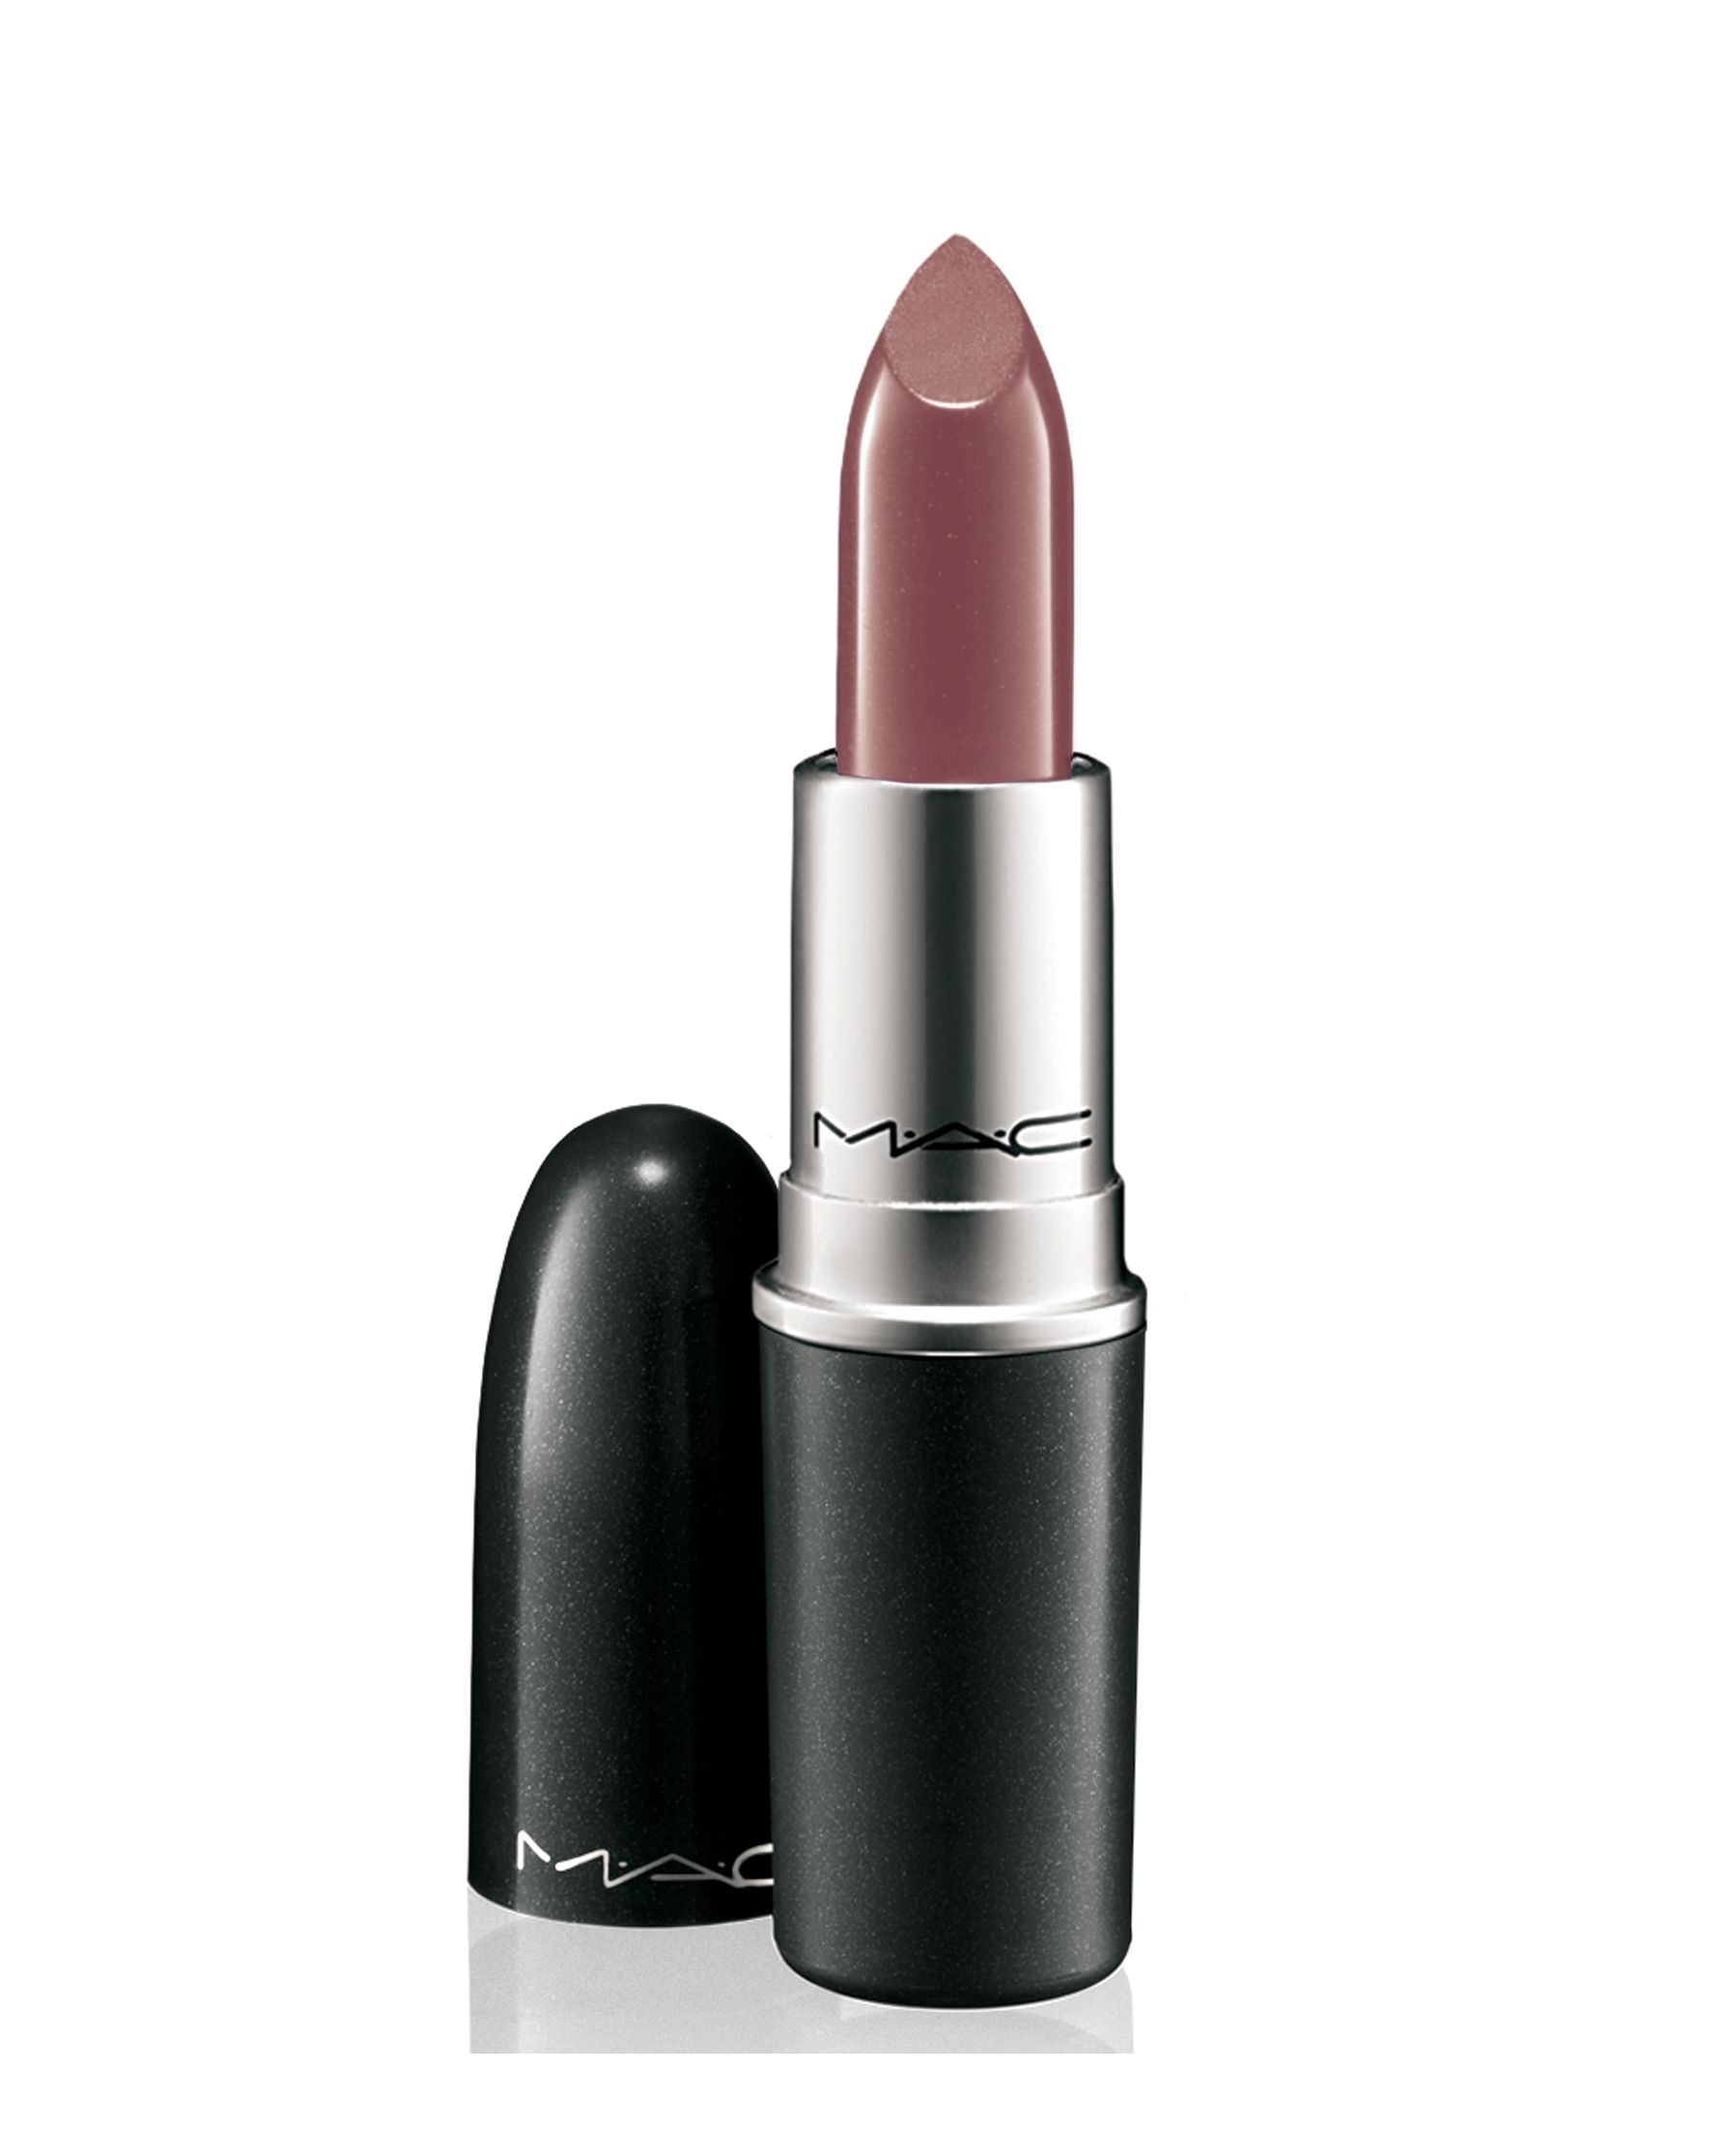 MAC Cremesheen Lipstick in Crème In Your Coffee